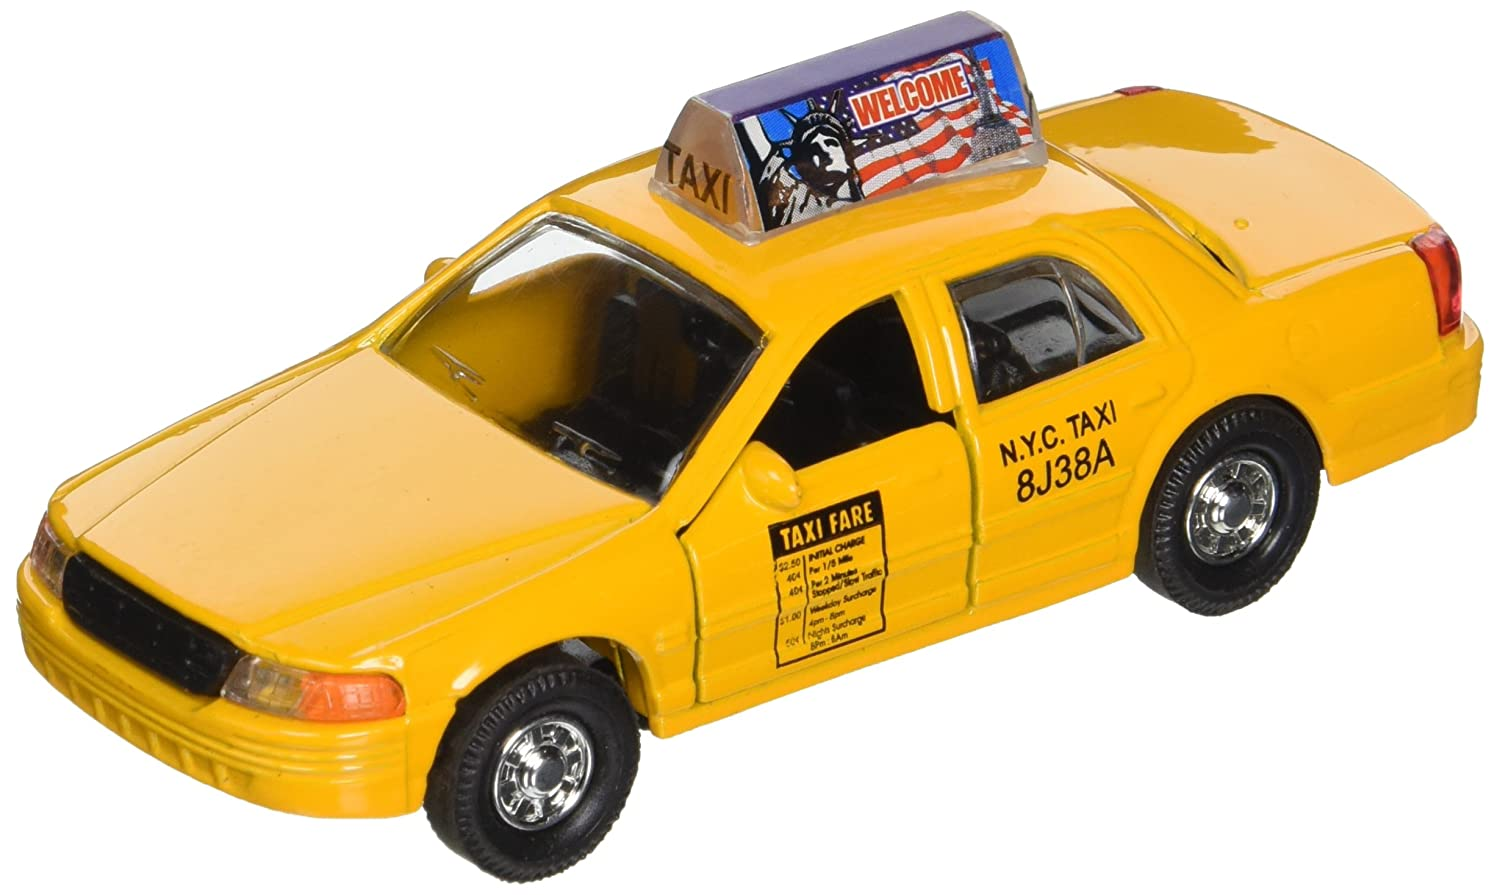 New York City Modern Yellow NYC Medallion Taxi Cab 1 43 O Scale Diecast Commercial Car